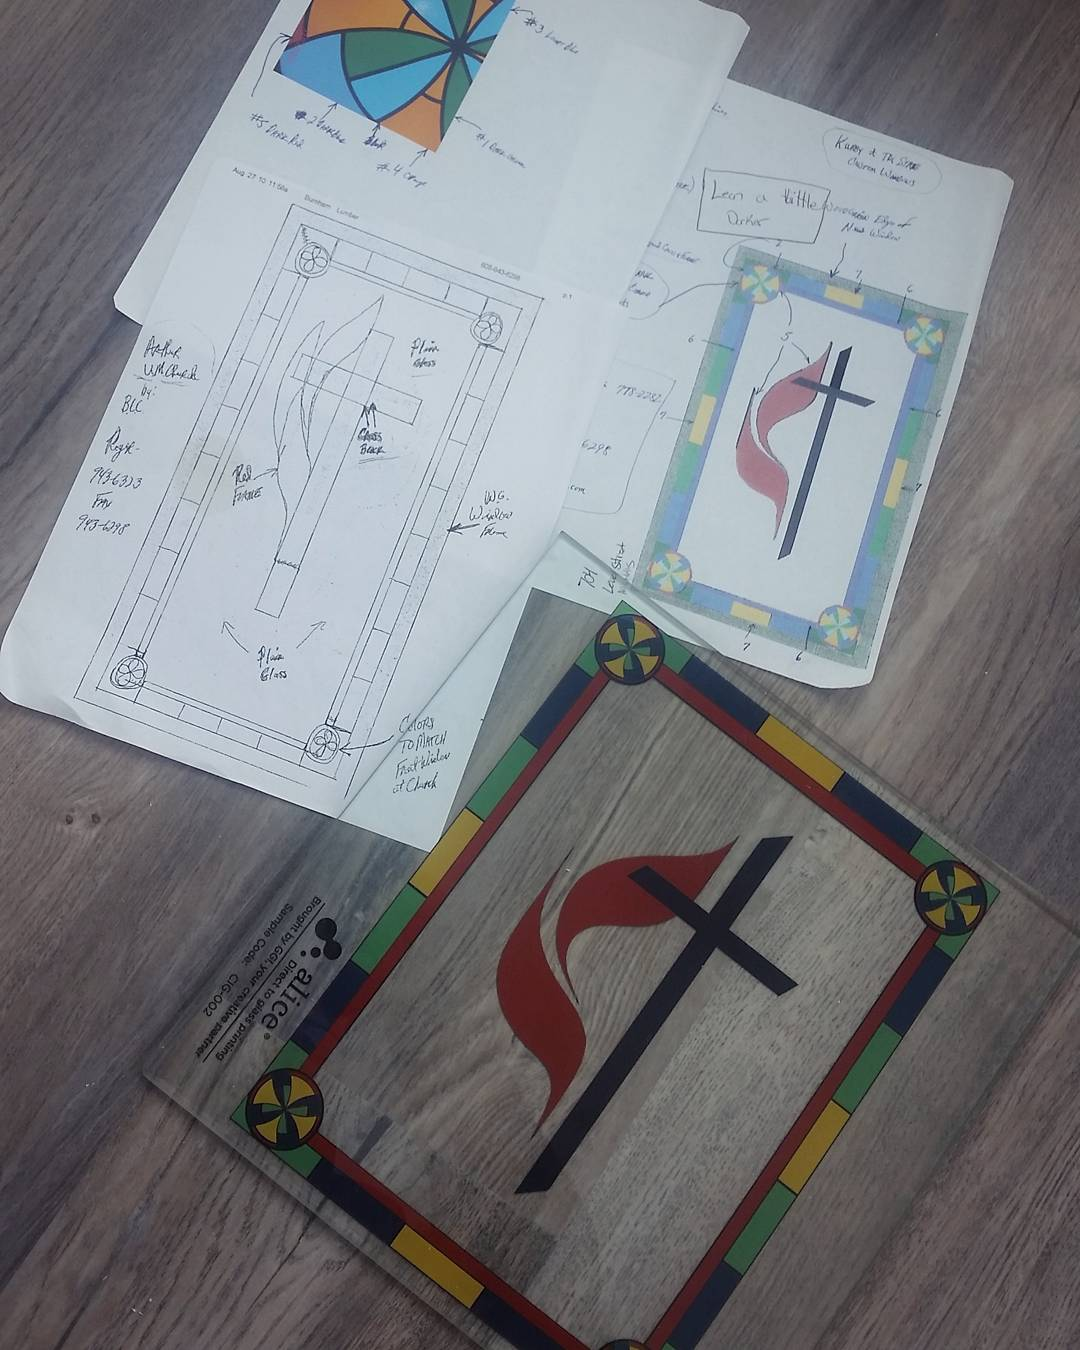 Final proof of the stained glass design with rough drafts